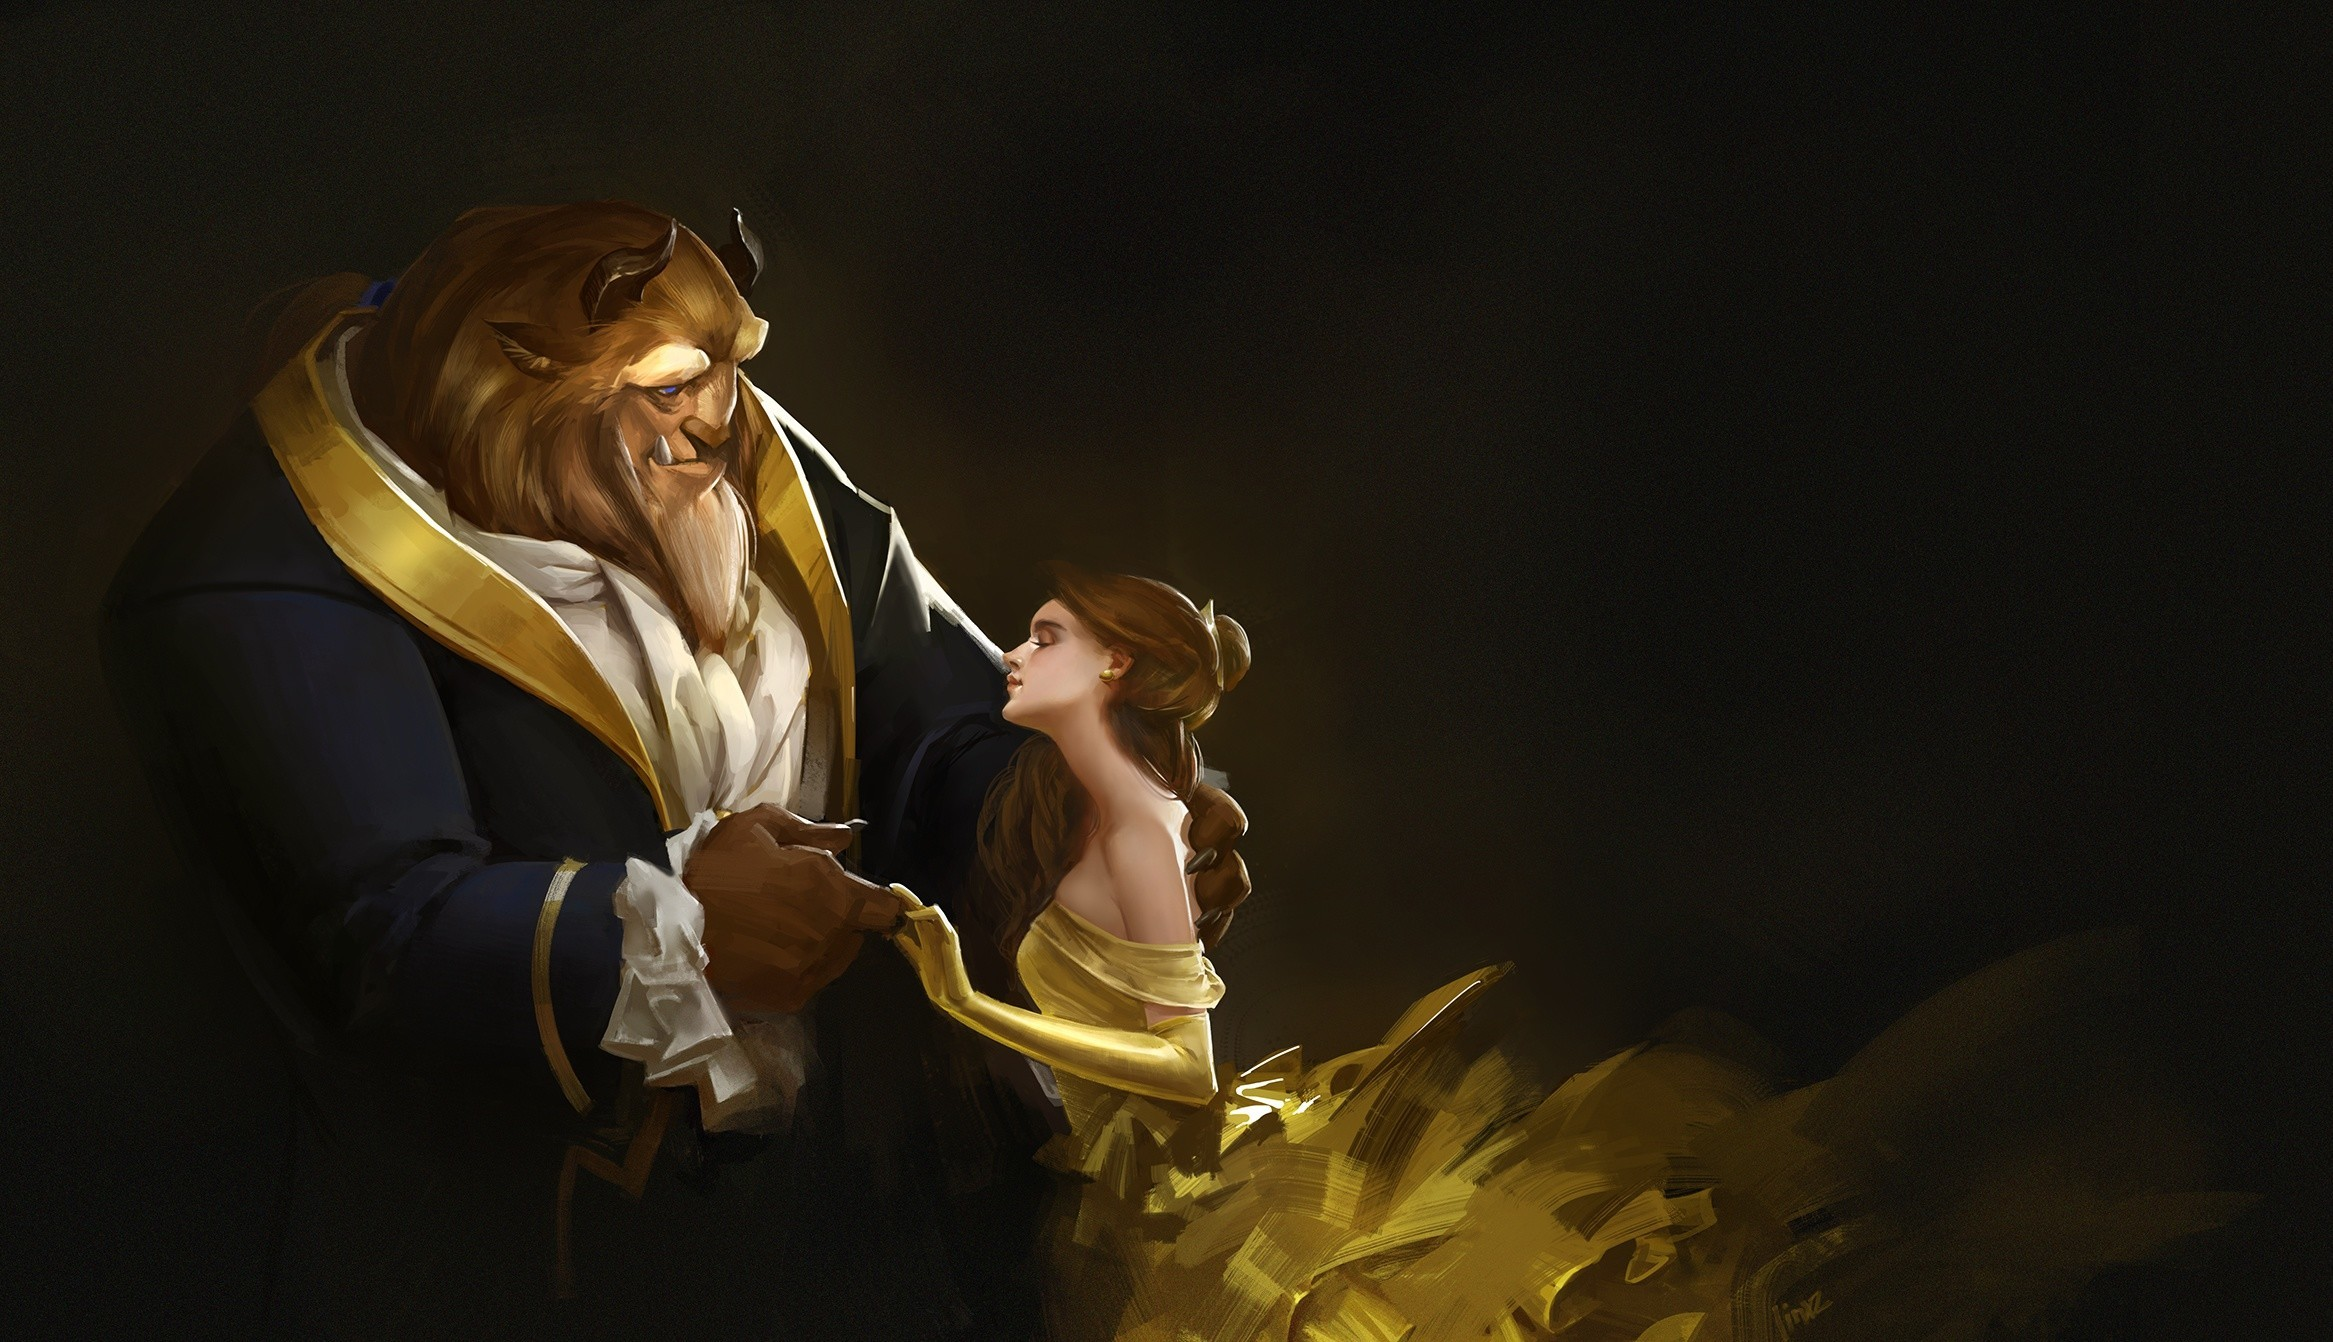 Res: 2333x1342, 1920x1080 Entertainment Wallpapers.com images Beauty And The Beast HD  wallpaper and background photos